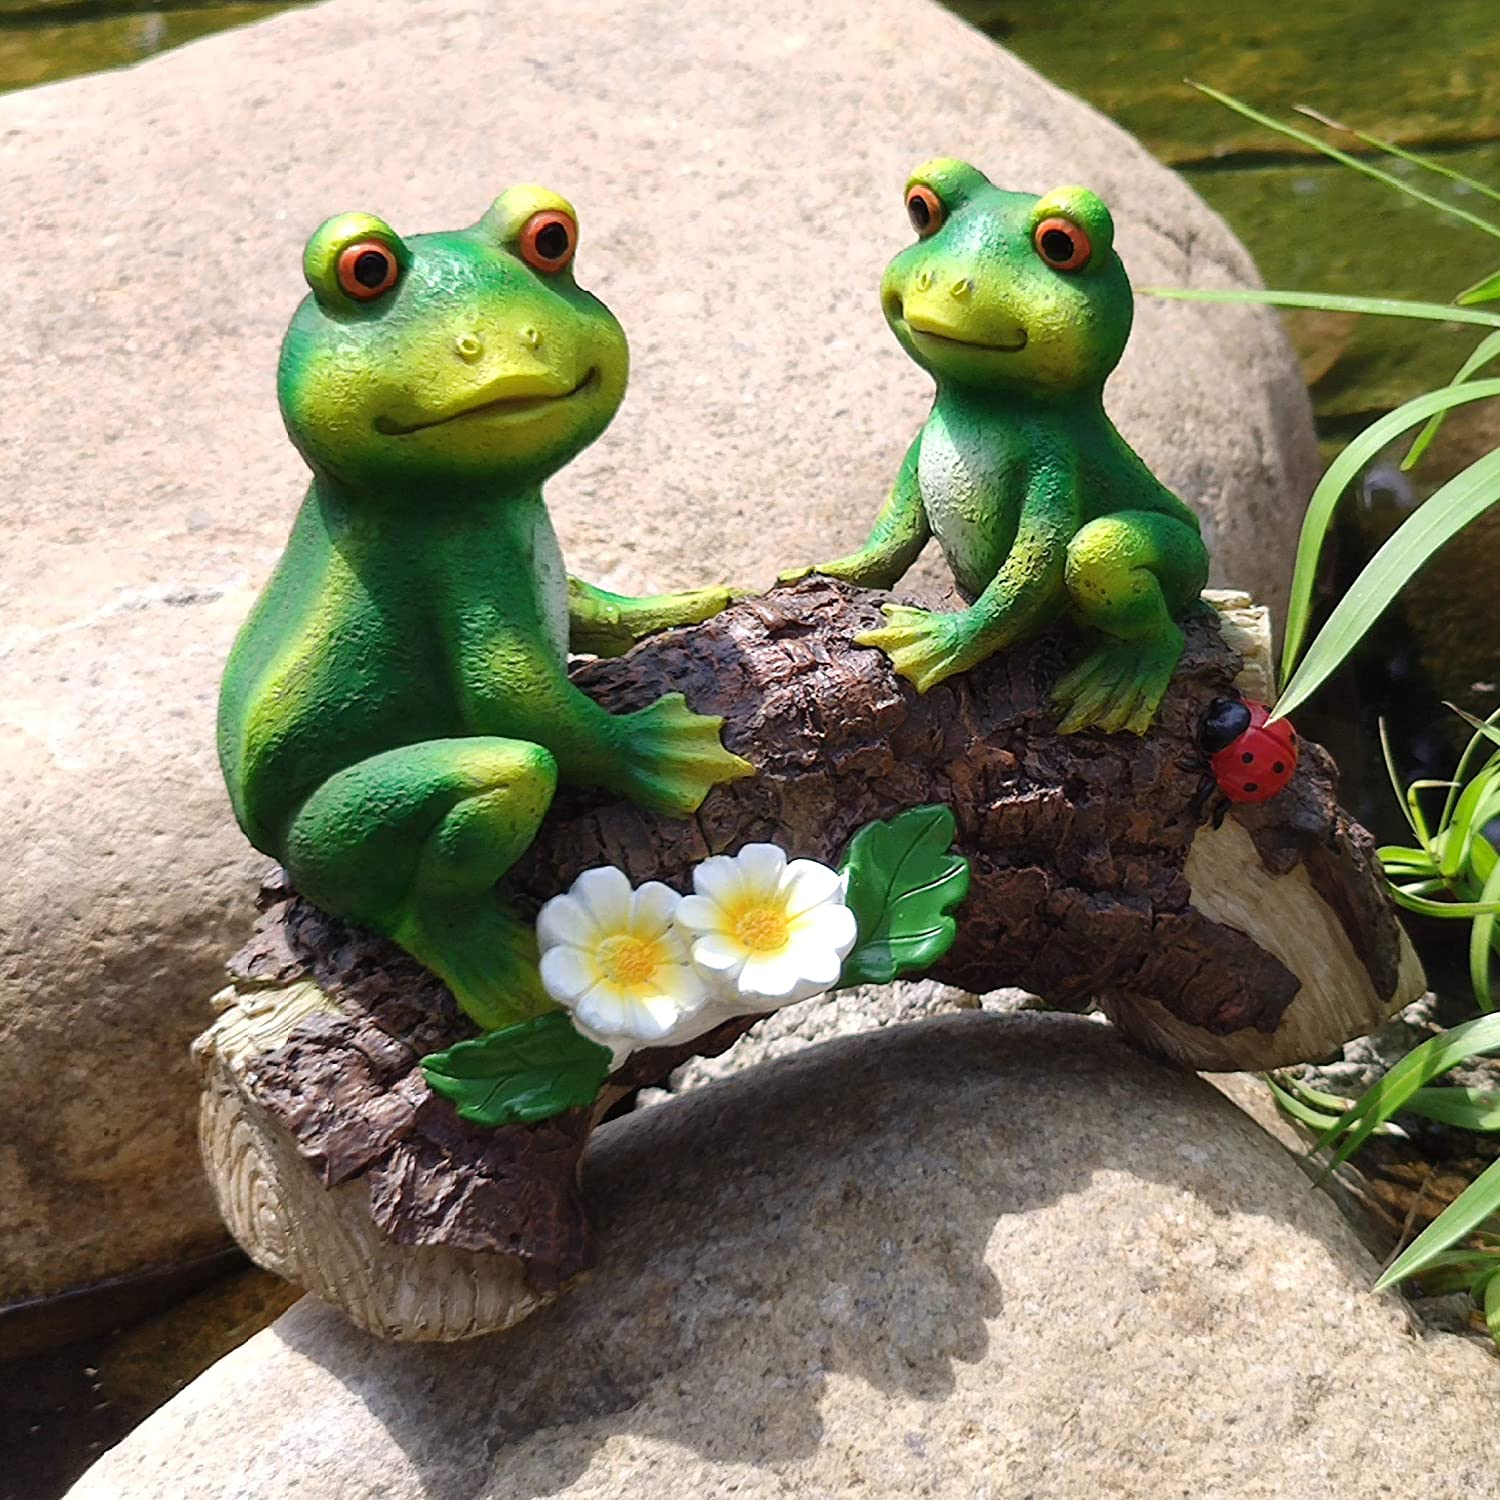 Mr. and Mrs. Frog on A surprise price is realized Wood Garden 5 ☆ very popular Bridge for Statue Pa Decoration